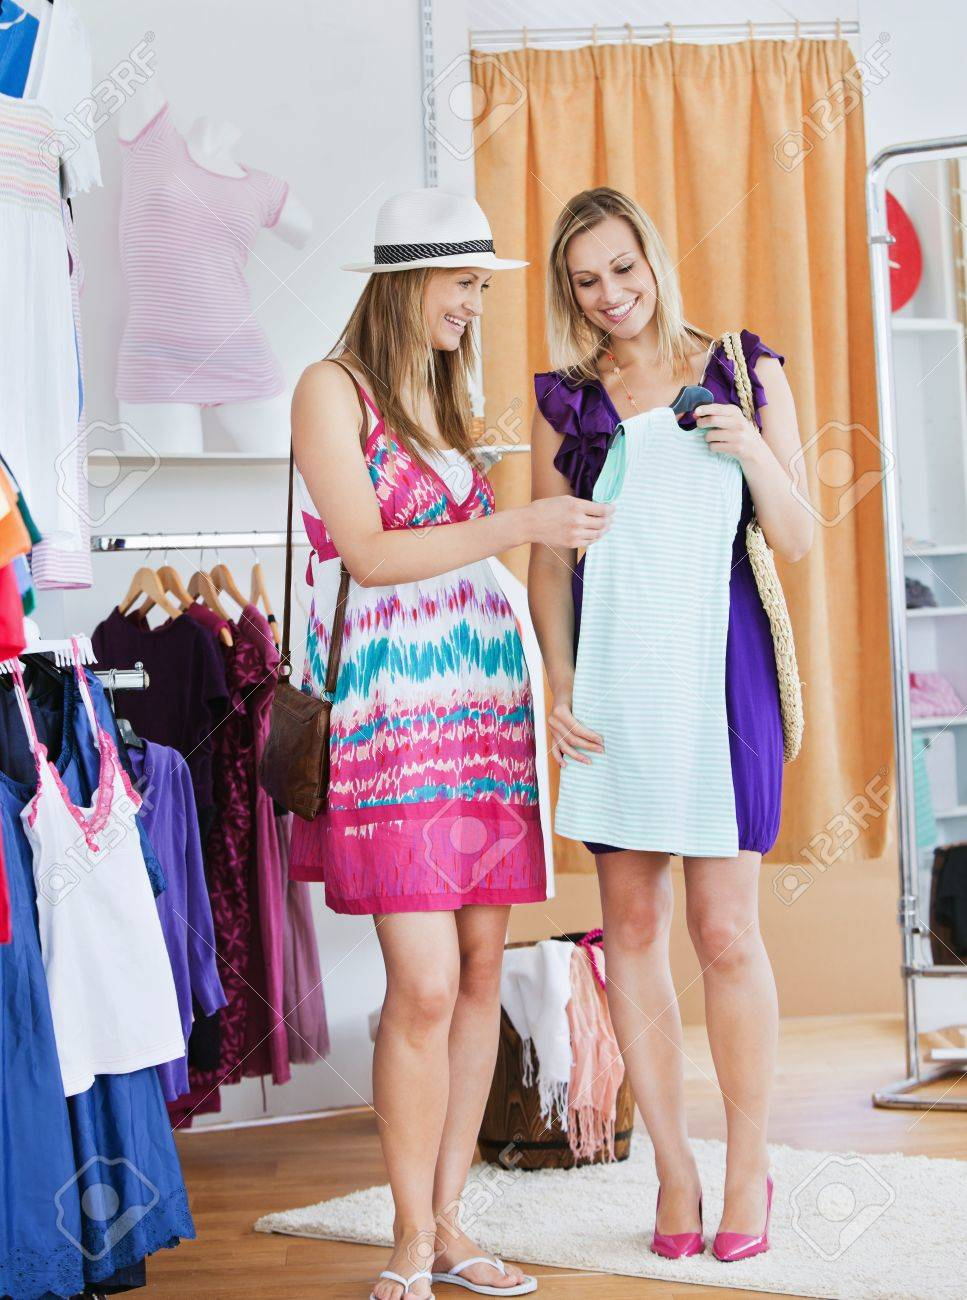 Animated friends looking at a shirt in a clothes store Stock Photo - 10248979